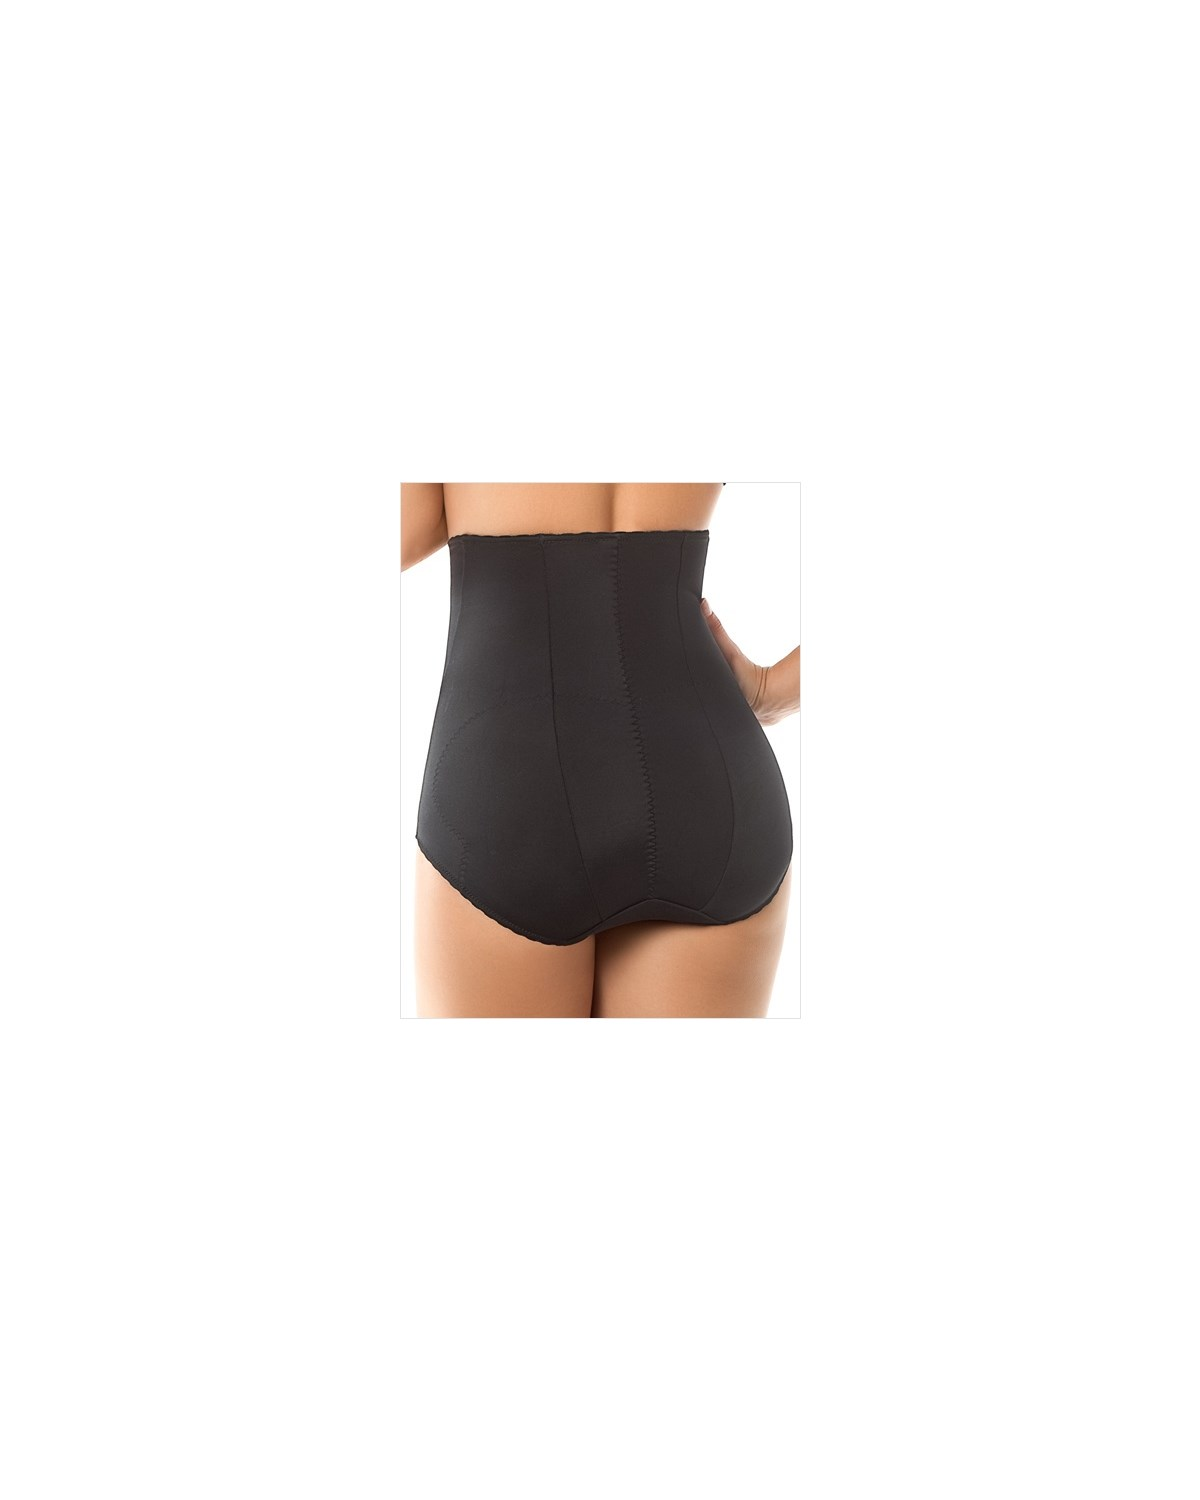 high-waisted girdle with butt lifter benefit-700- Black-MainImage